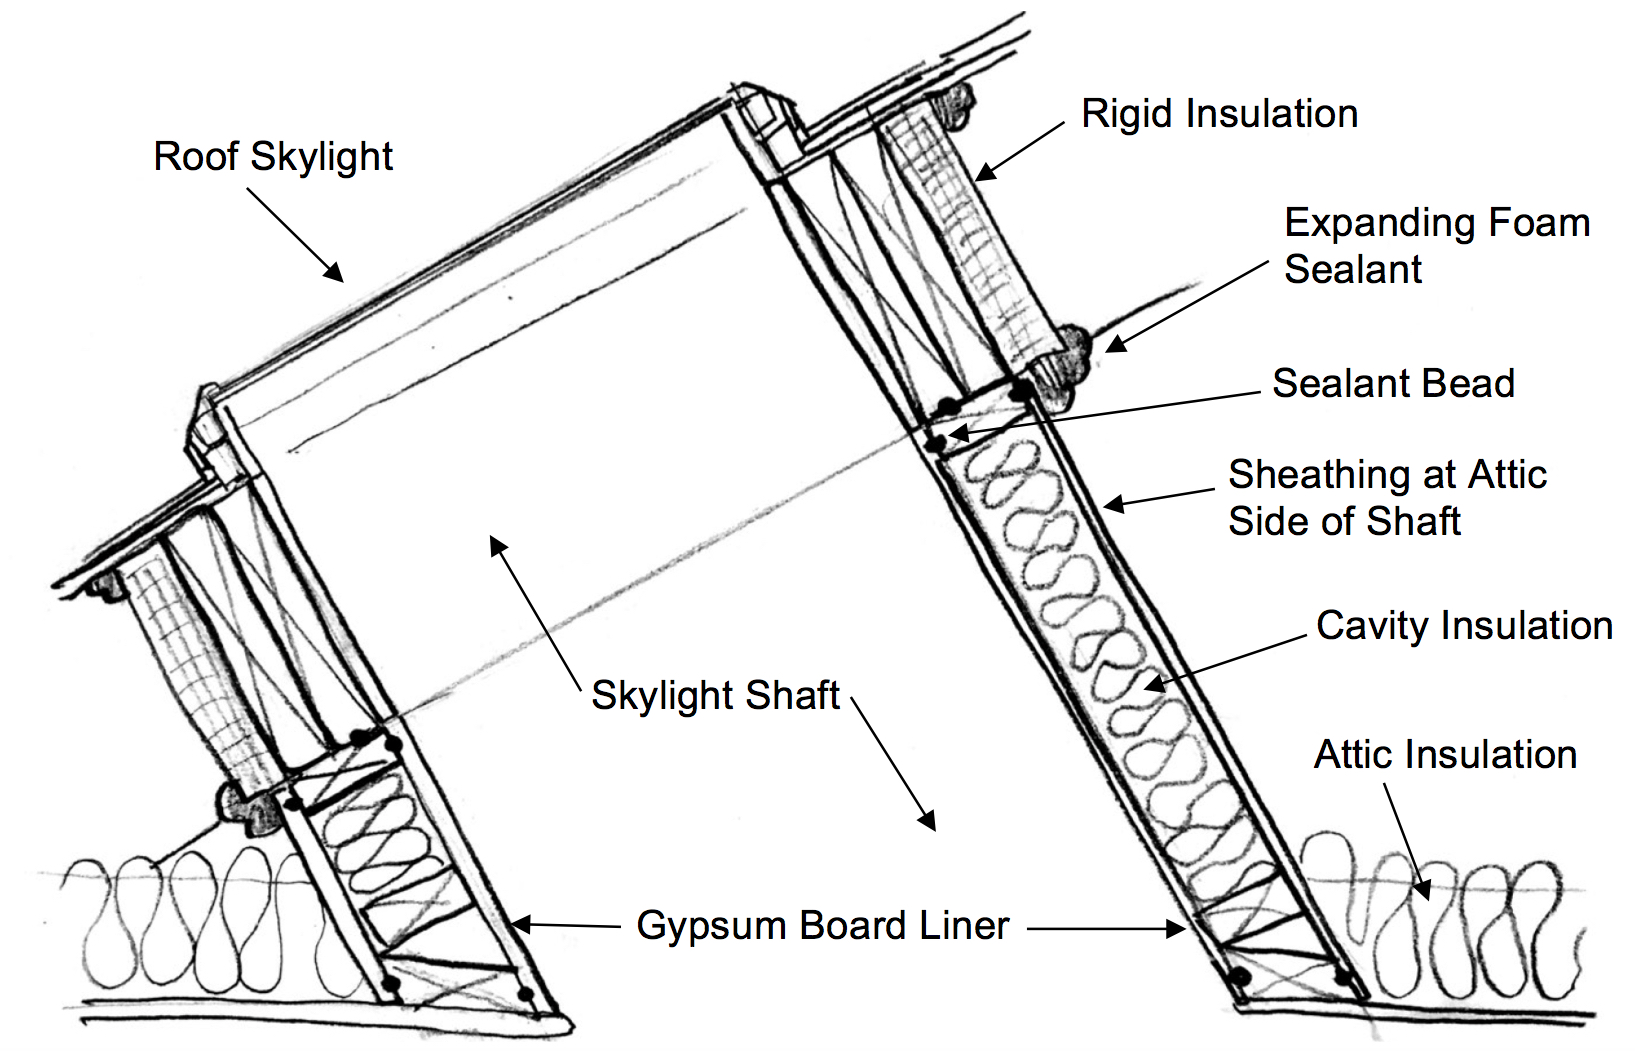 How To Inspect The Skylight Shaft Wall Insulation